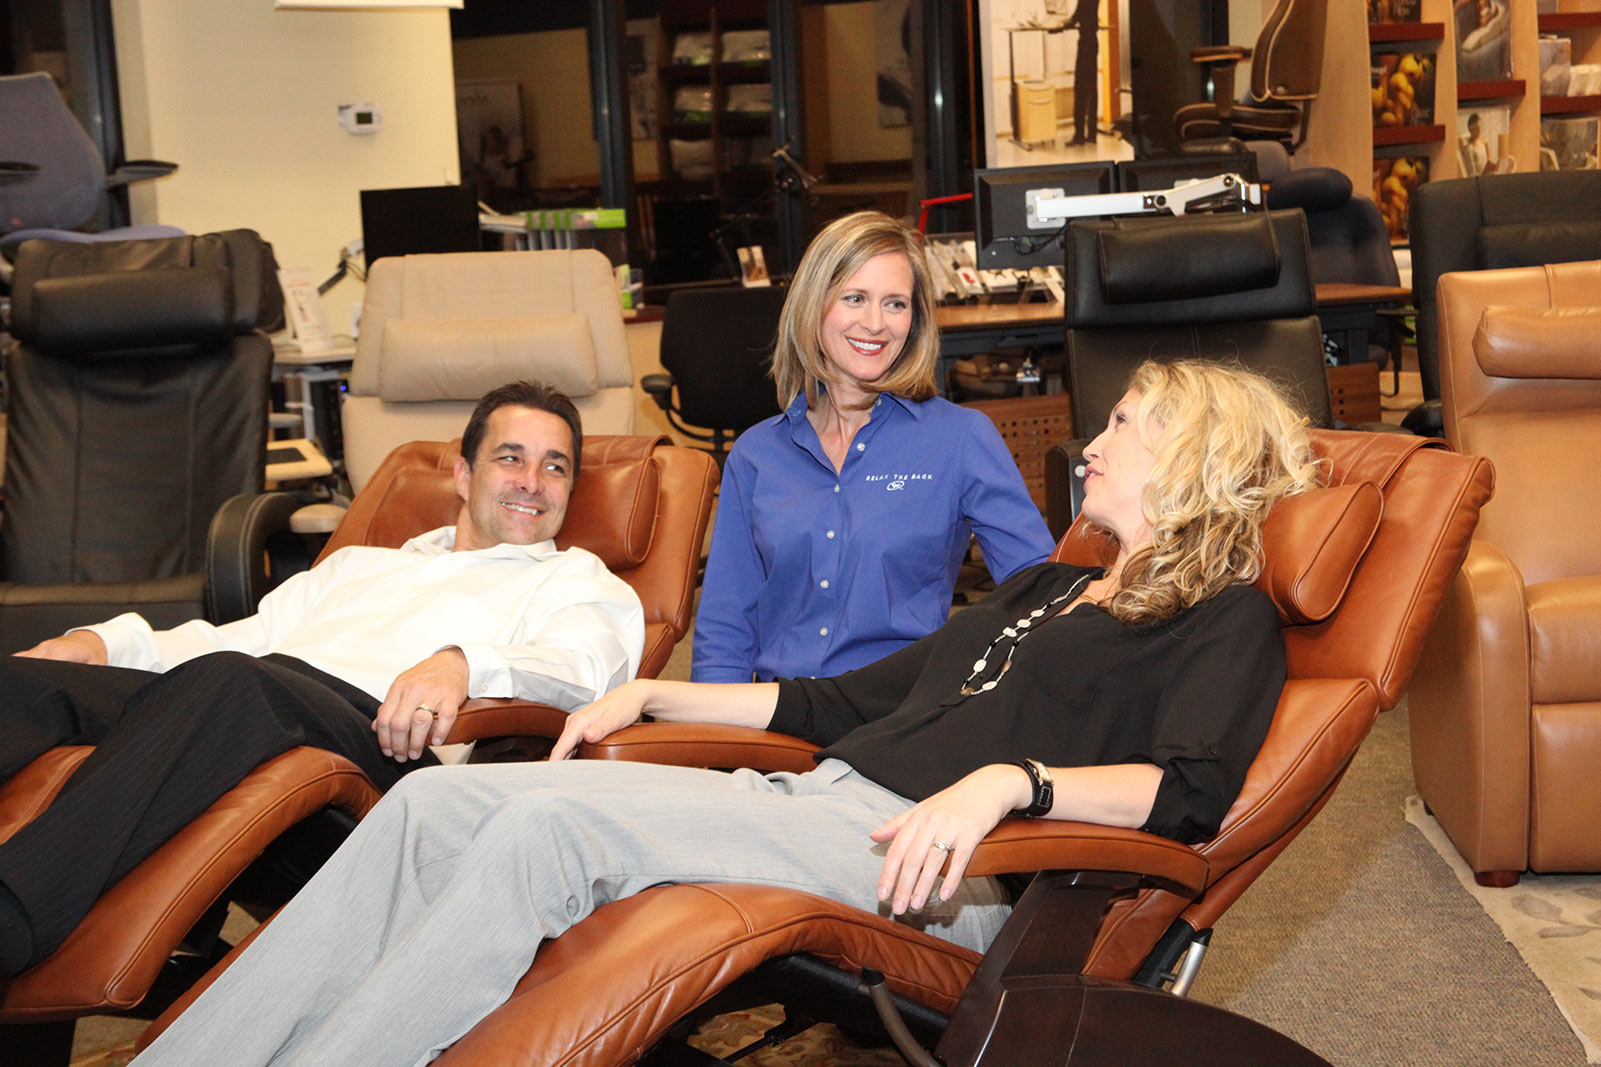 couple enjoying product at relax the back wellness franchise store